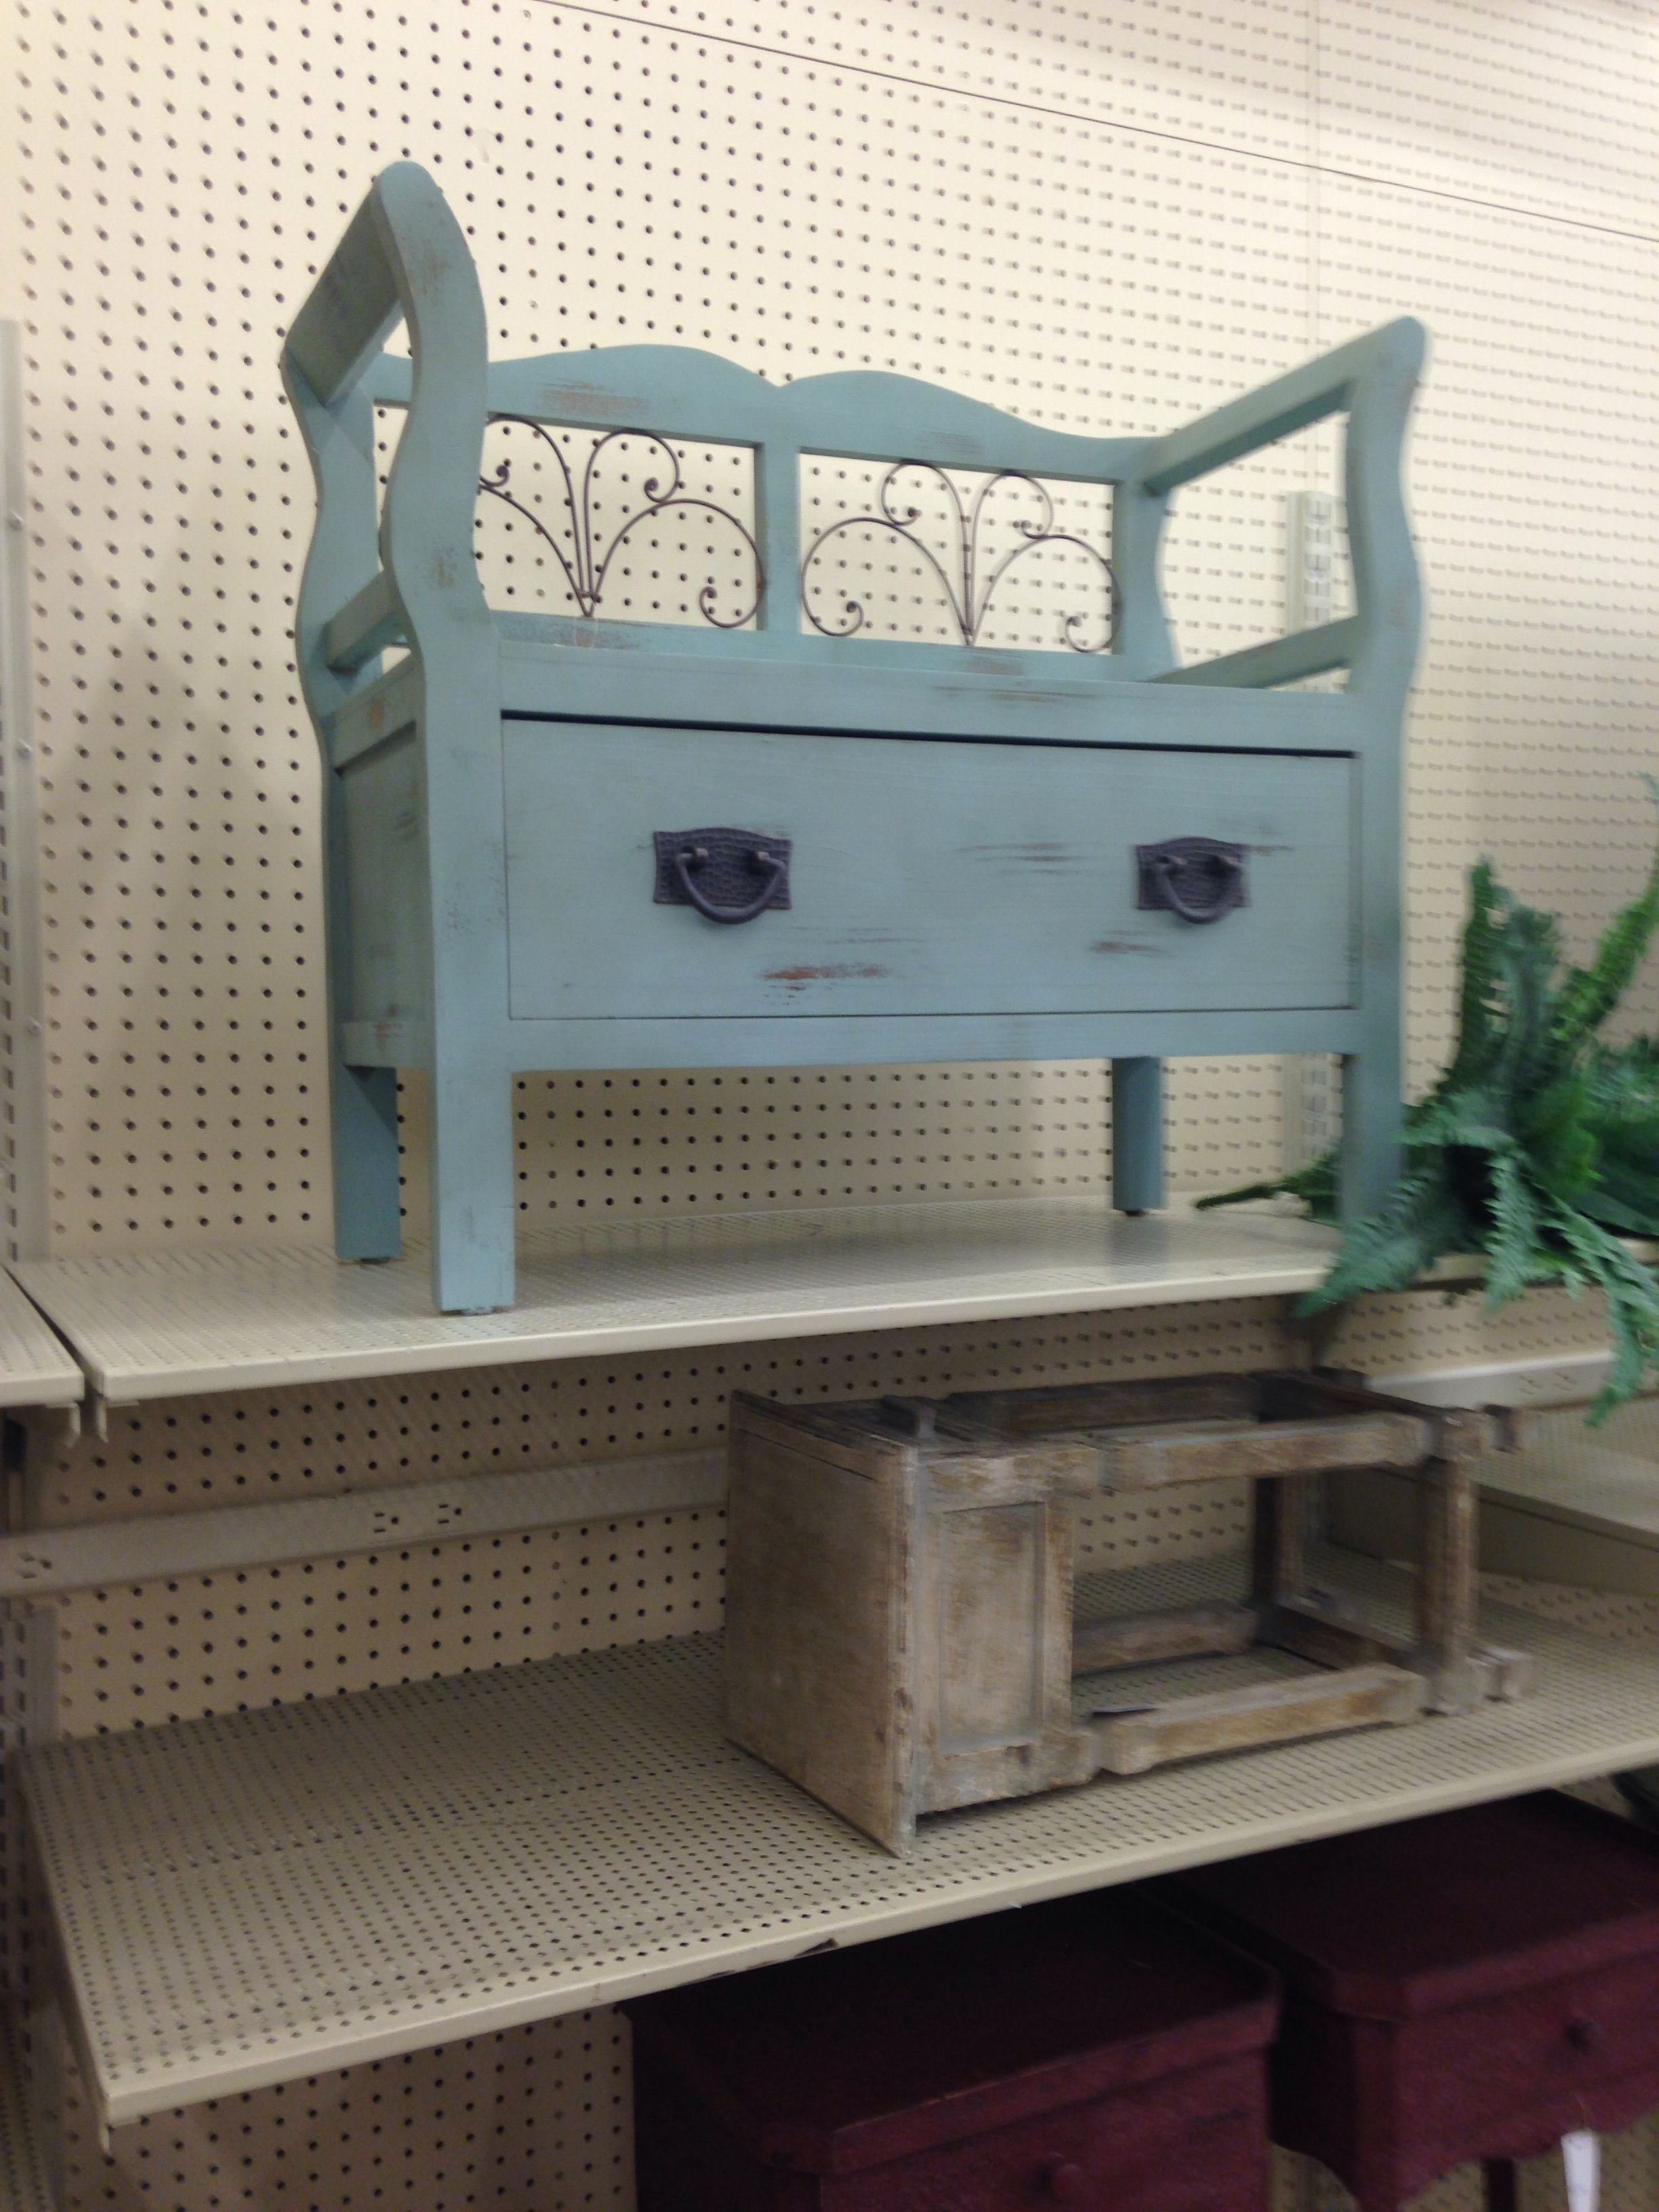 Hobby Lobby Entryway Furniture on Hobby Lobby Furniture Clearance id=18339